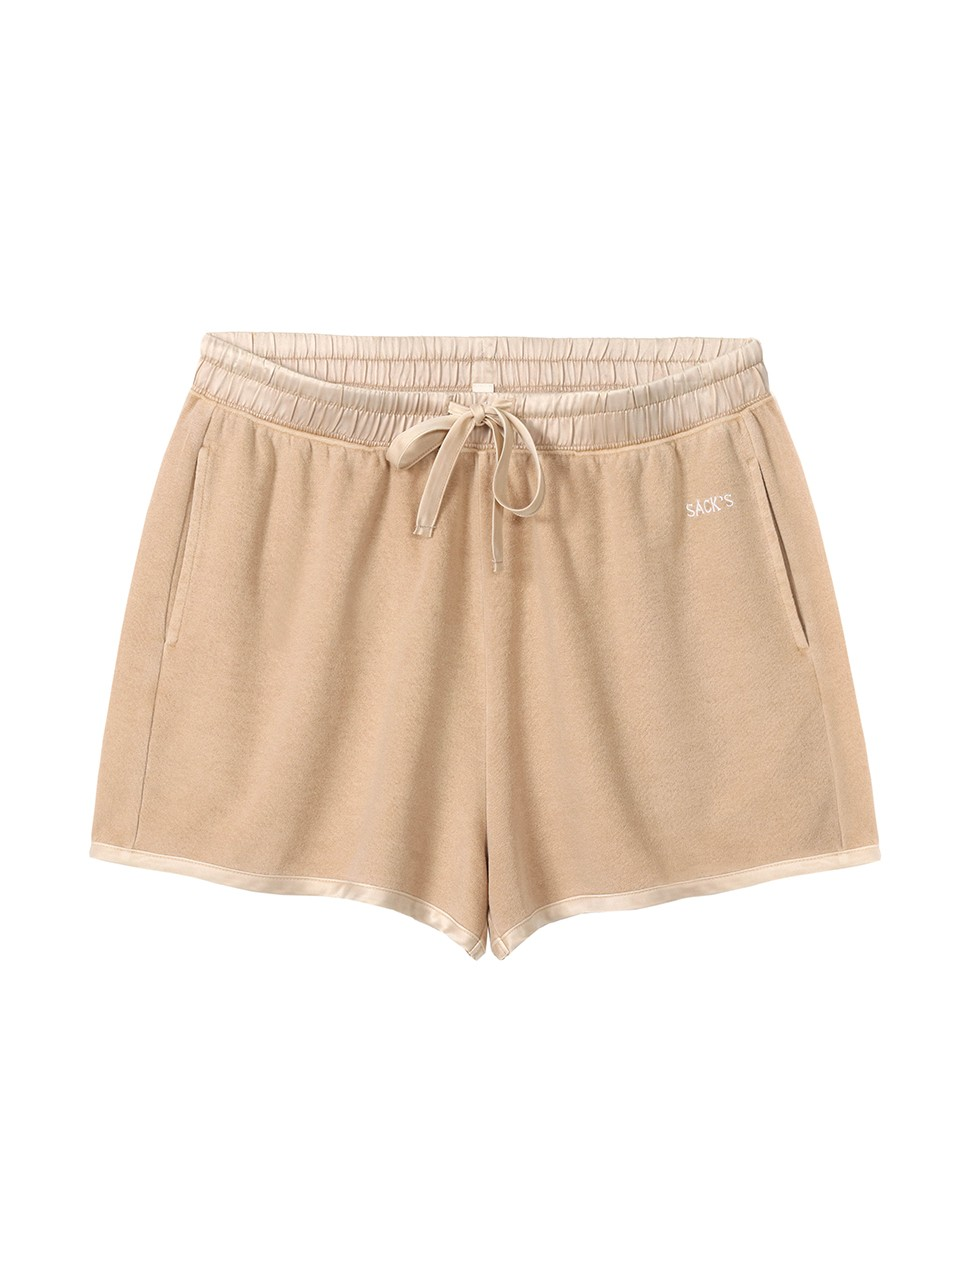 Zahara French Terry With Silk Trimm Shorts